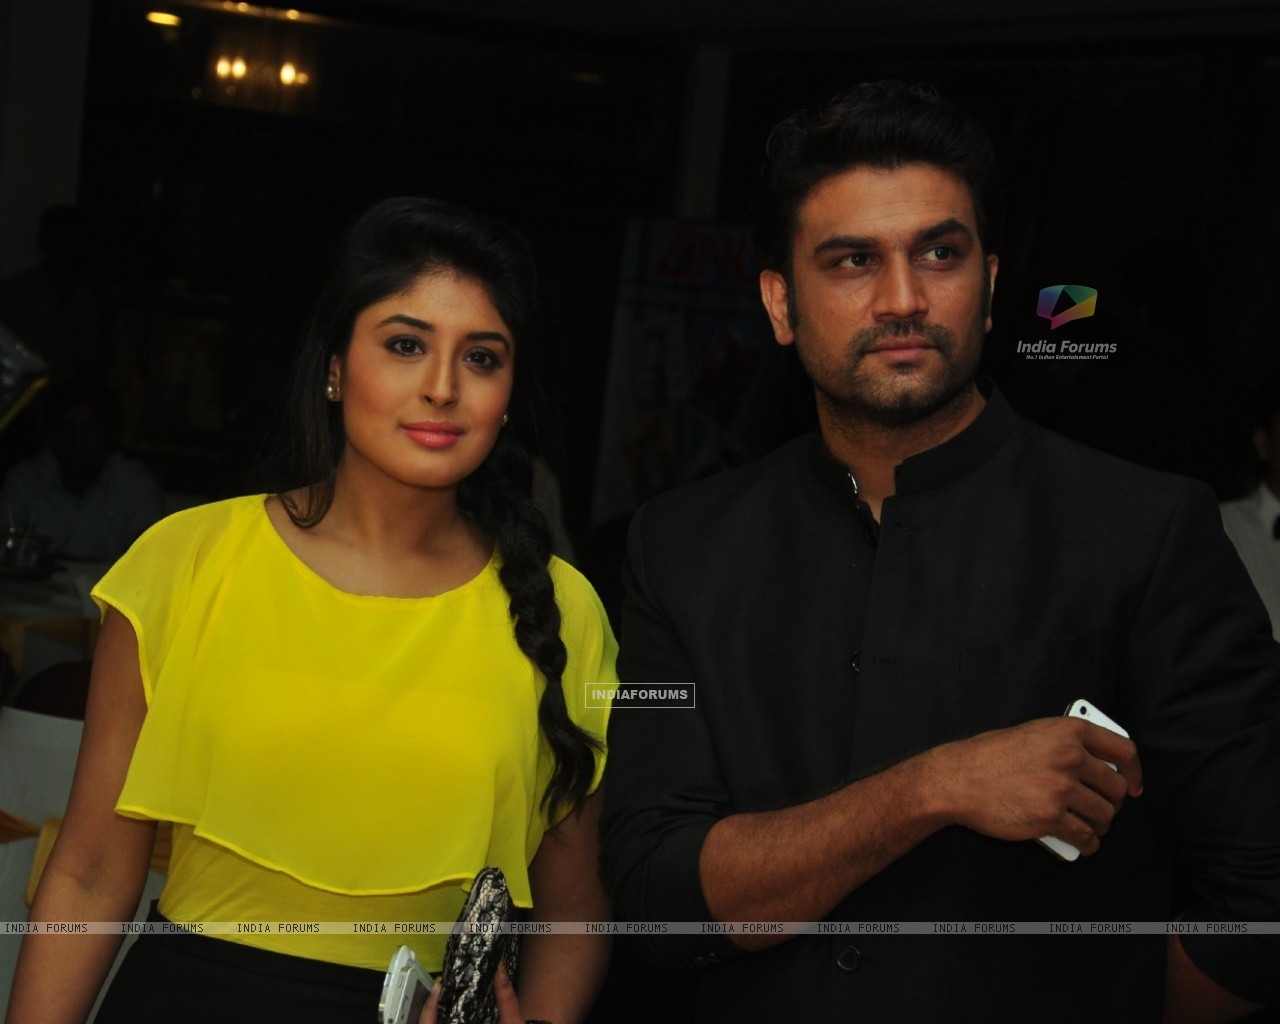 Kritika Kamra & Sharad Kelkar at the celebration of India Forums 9th Anniversary (248888) size:1280x1024